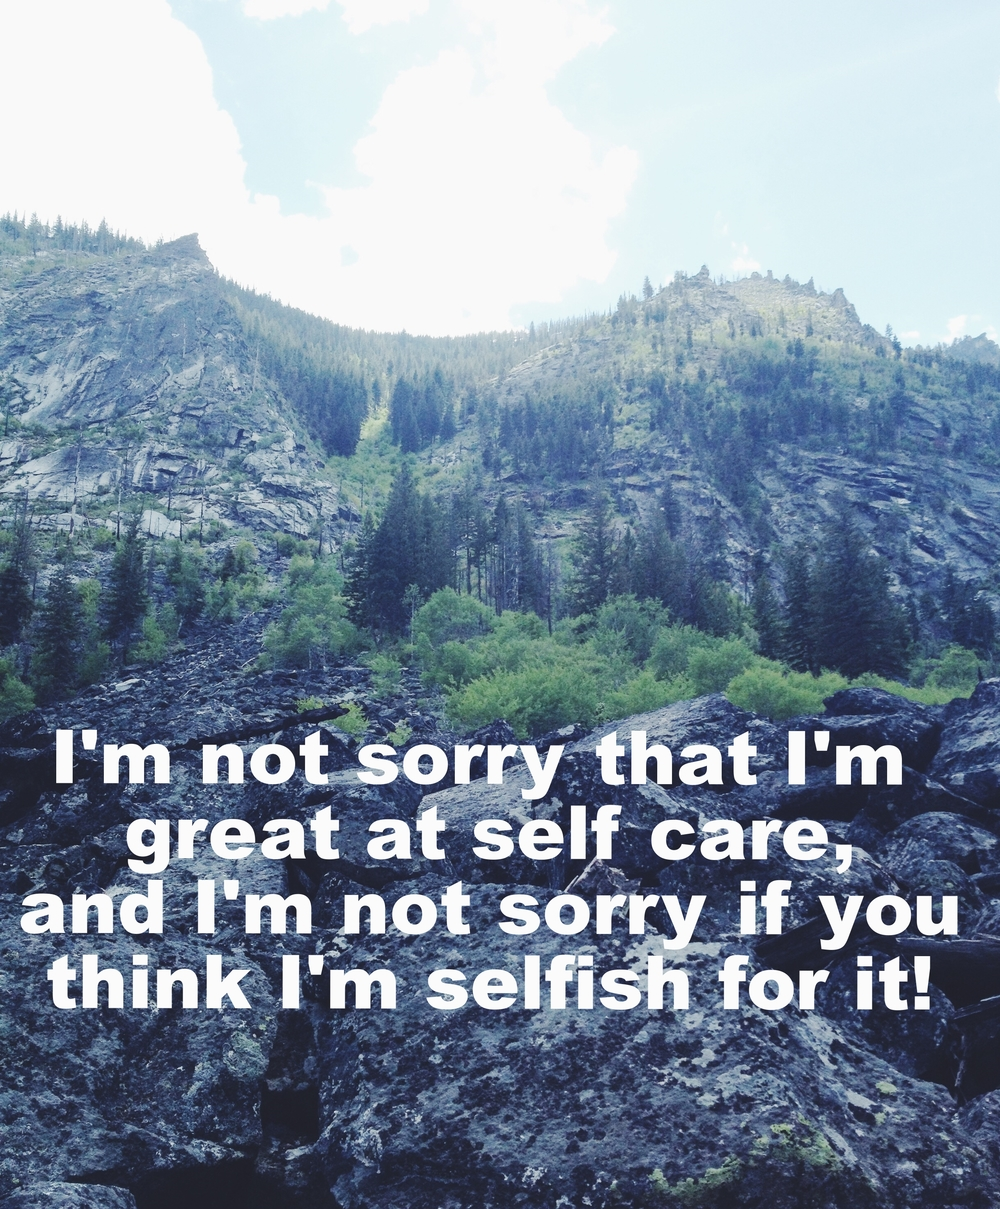 "Olivia May 1 2016 Image of a rocky mountainside, with evergreen trees and other plants. Slate-colored rock foregrounds the image, and ""I'm not sorry that I'm great at self-care, and I'm not sorry if you think I'm selfish for it!"" is overlaid."